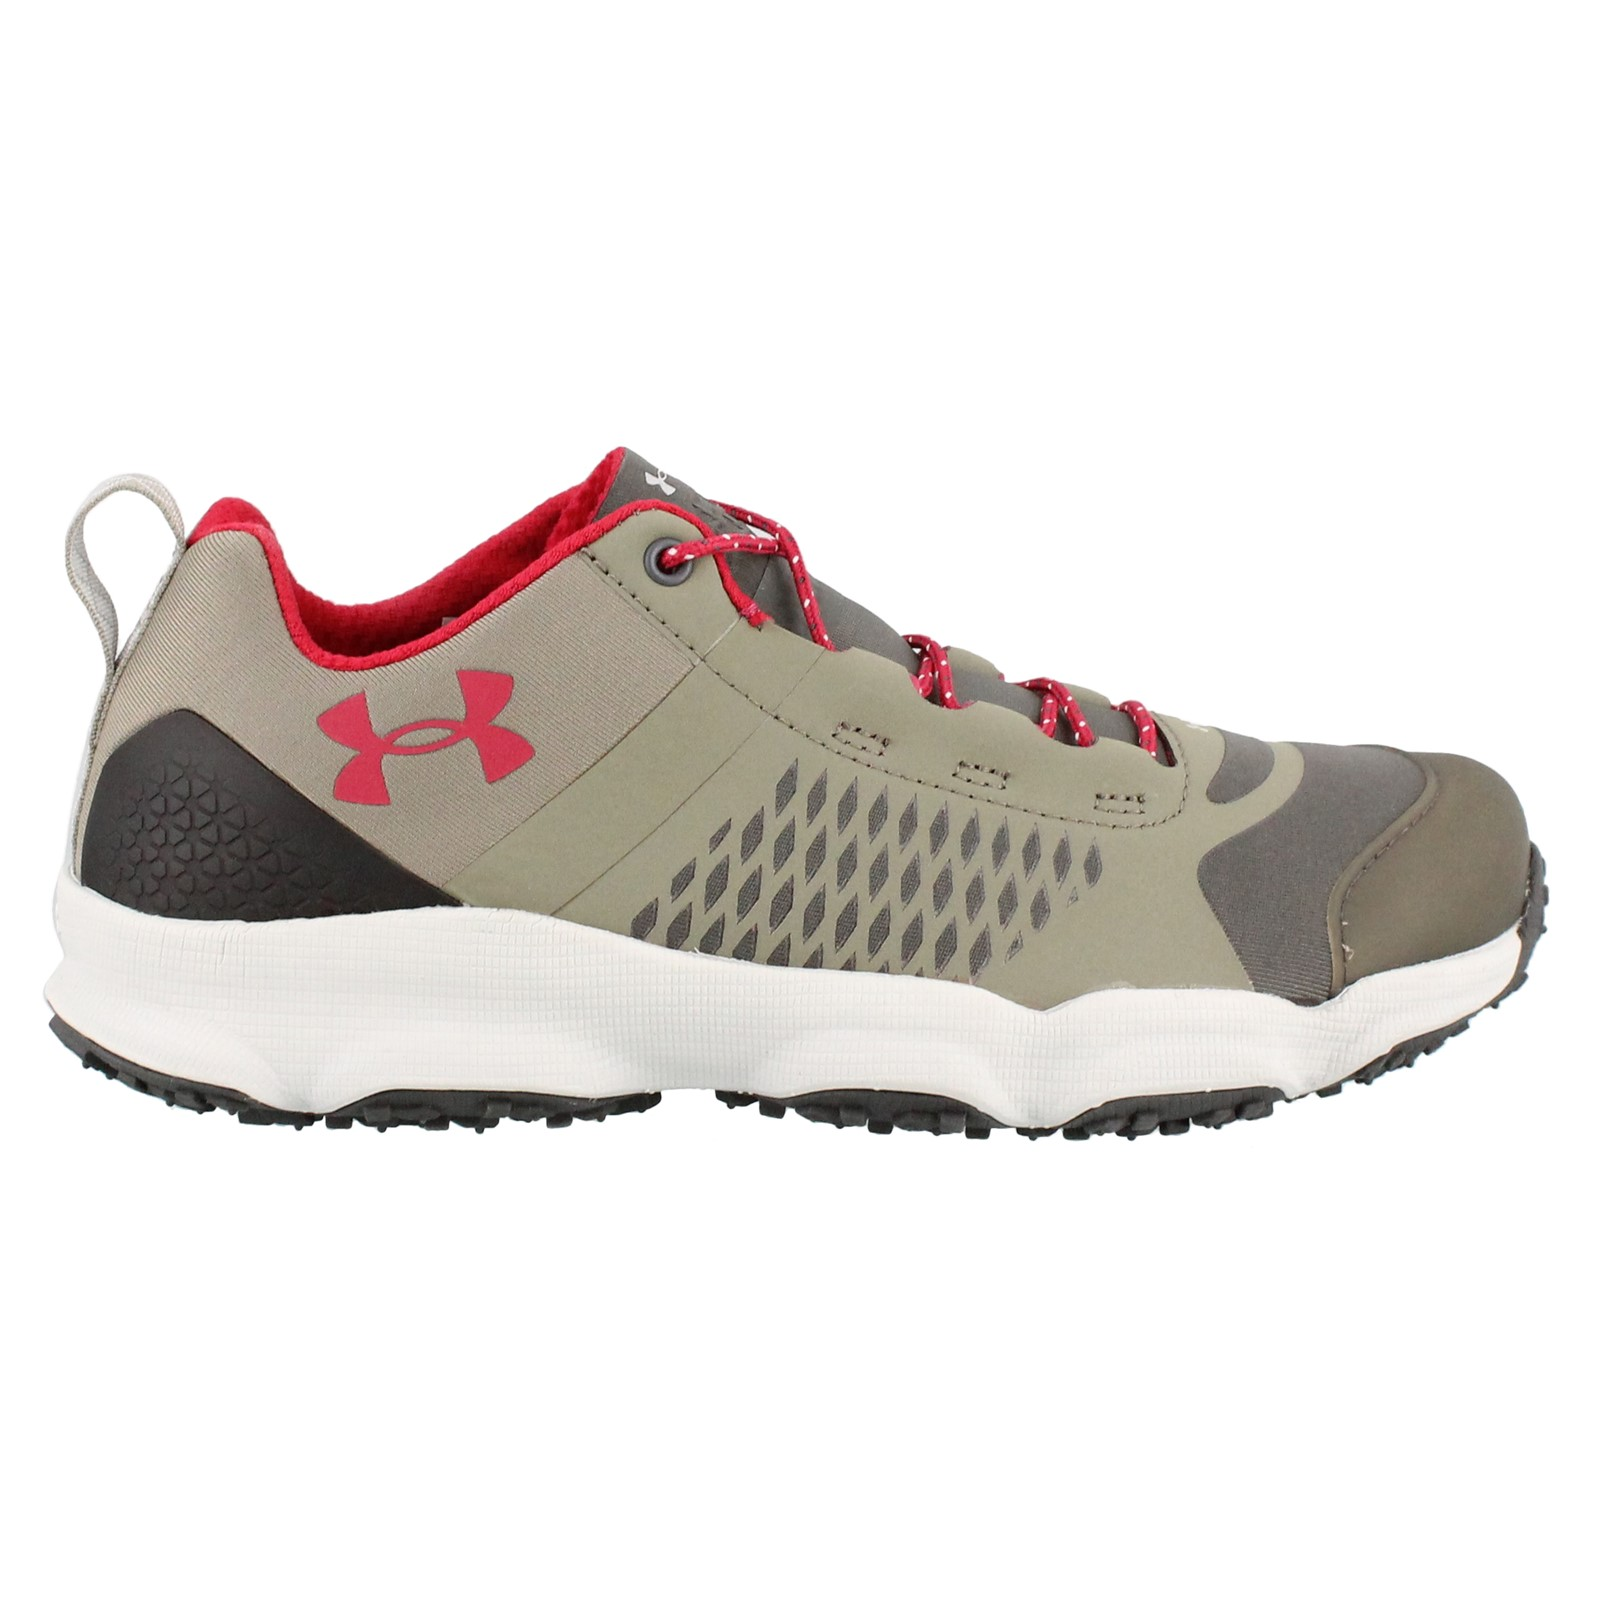 Women's Under Armour, Speedfit Hike Low Hiking